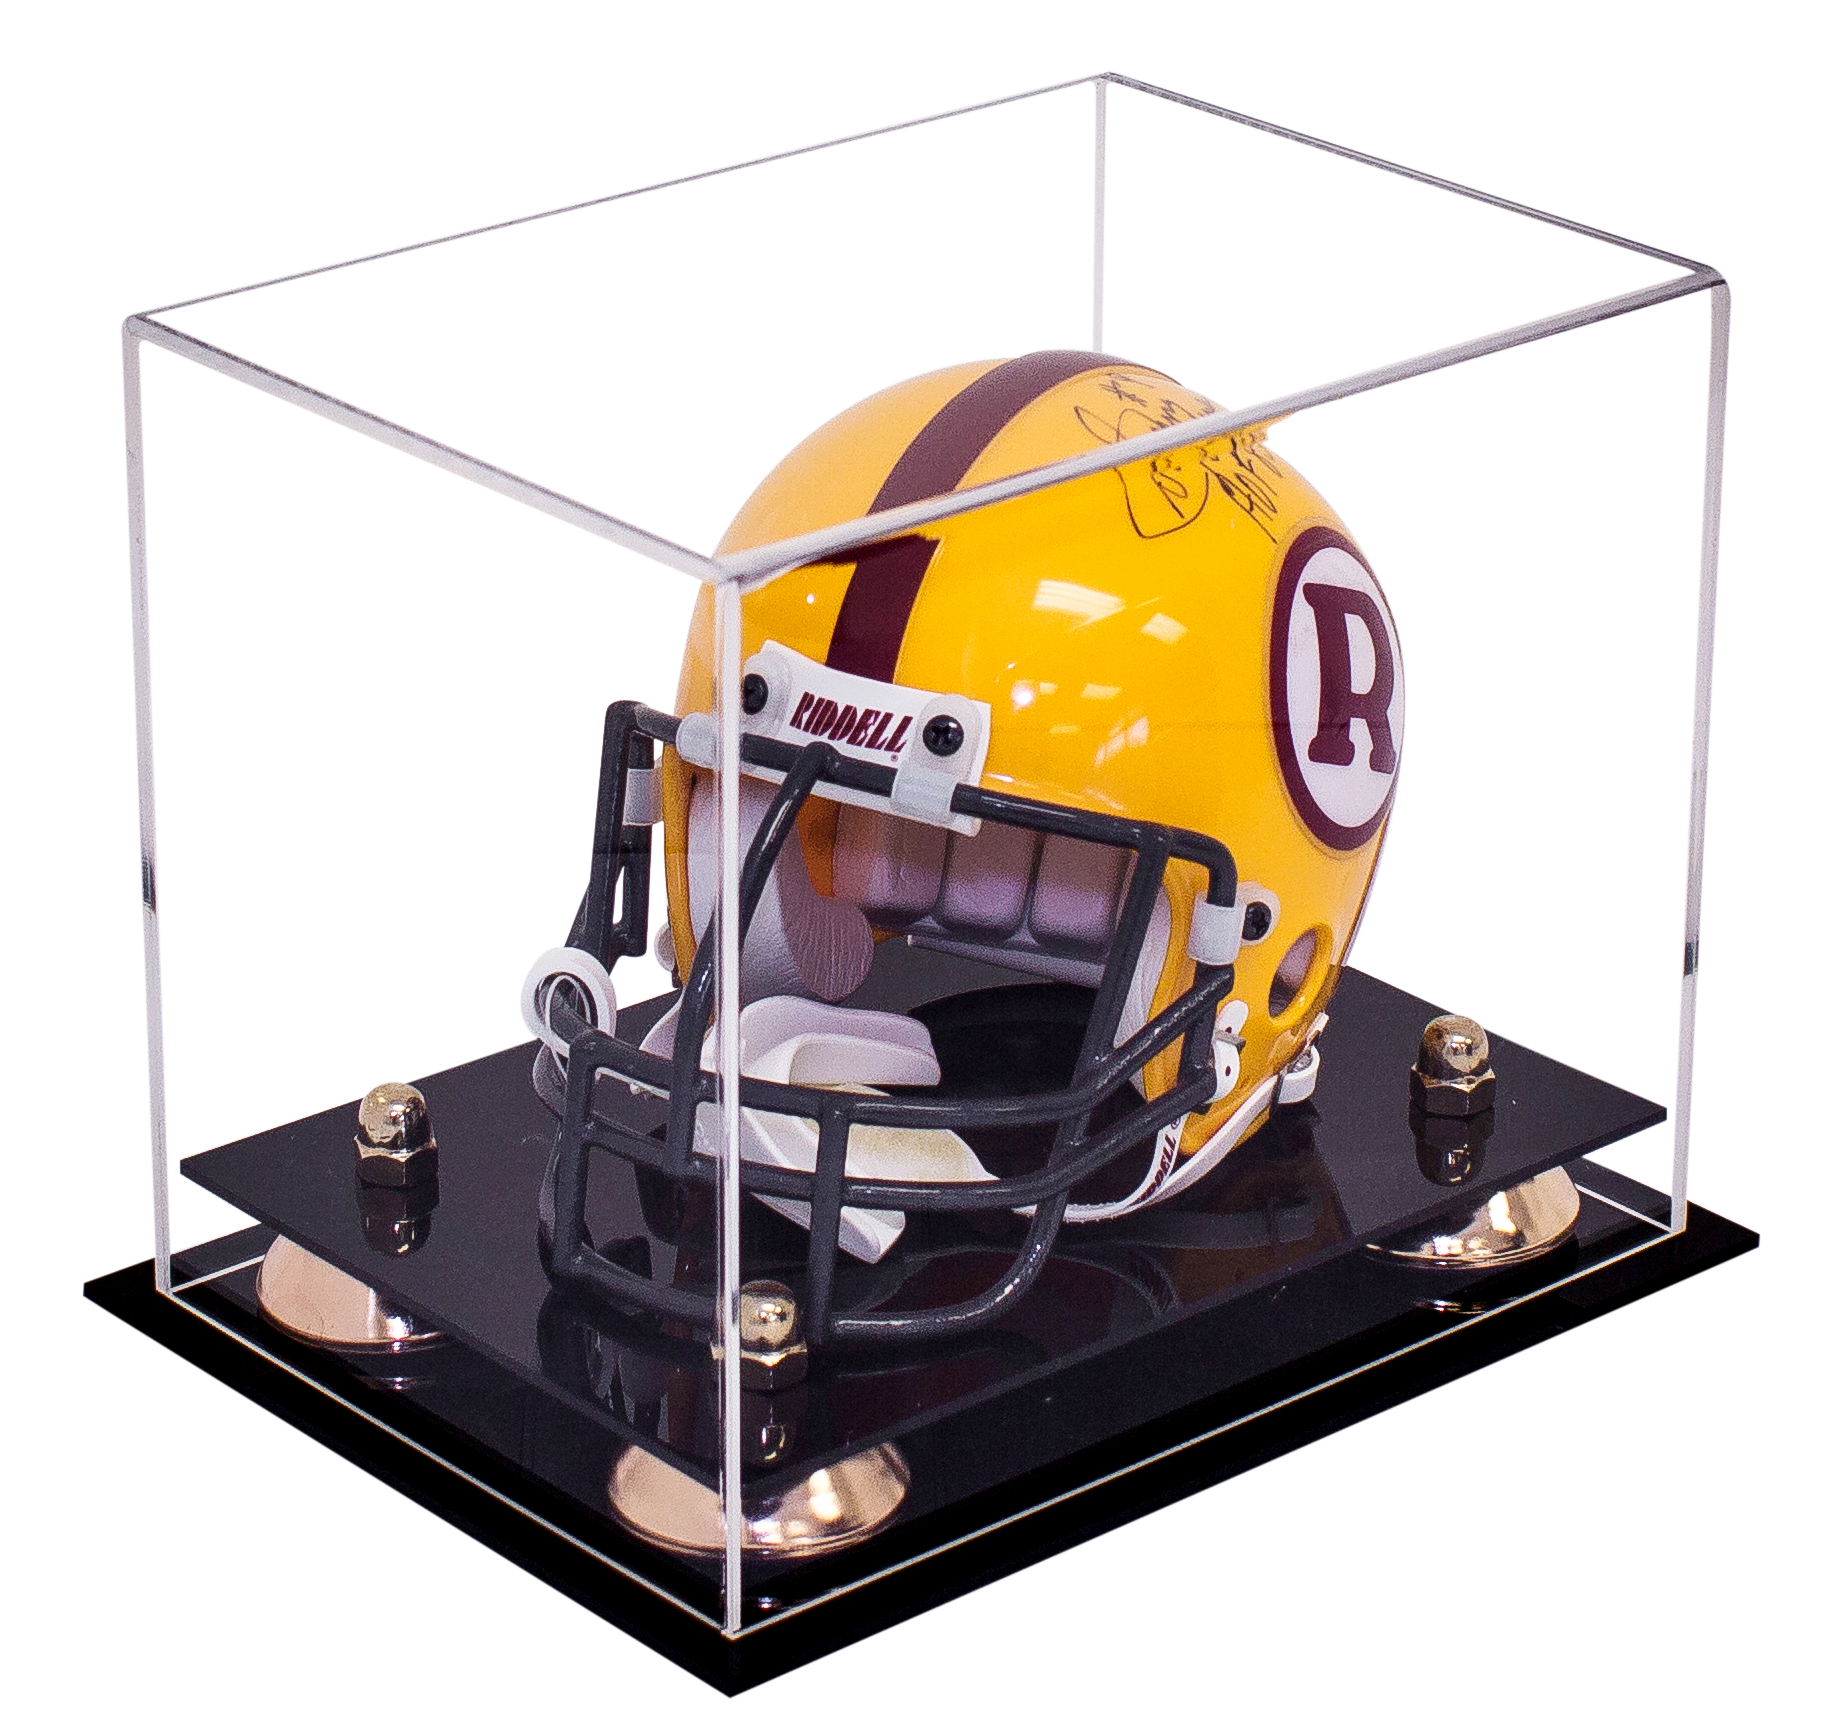 Deluxe Acrylic Mini Football Helmet Display Case with Metal Risers